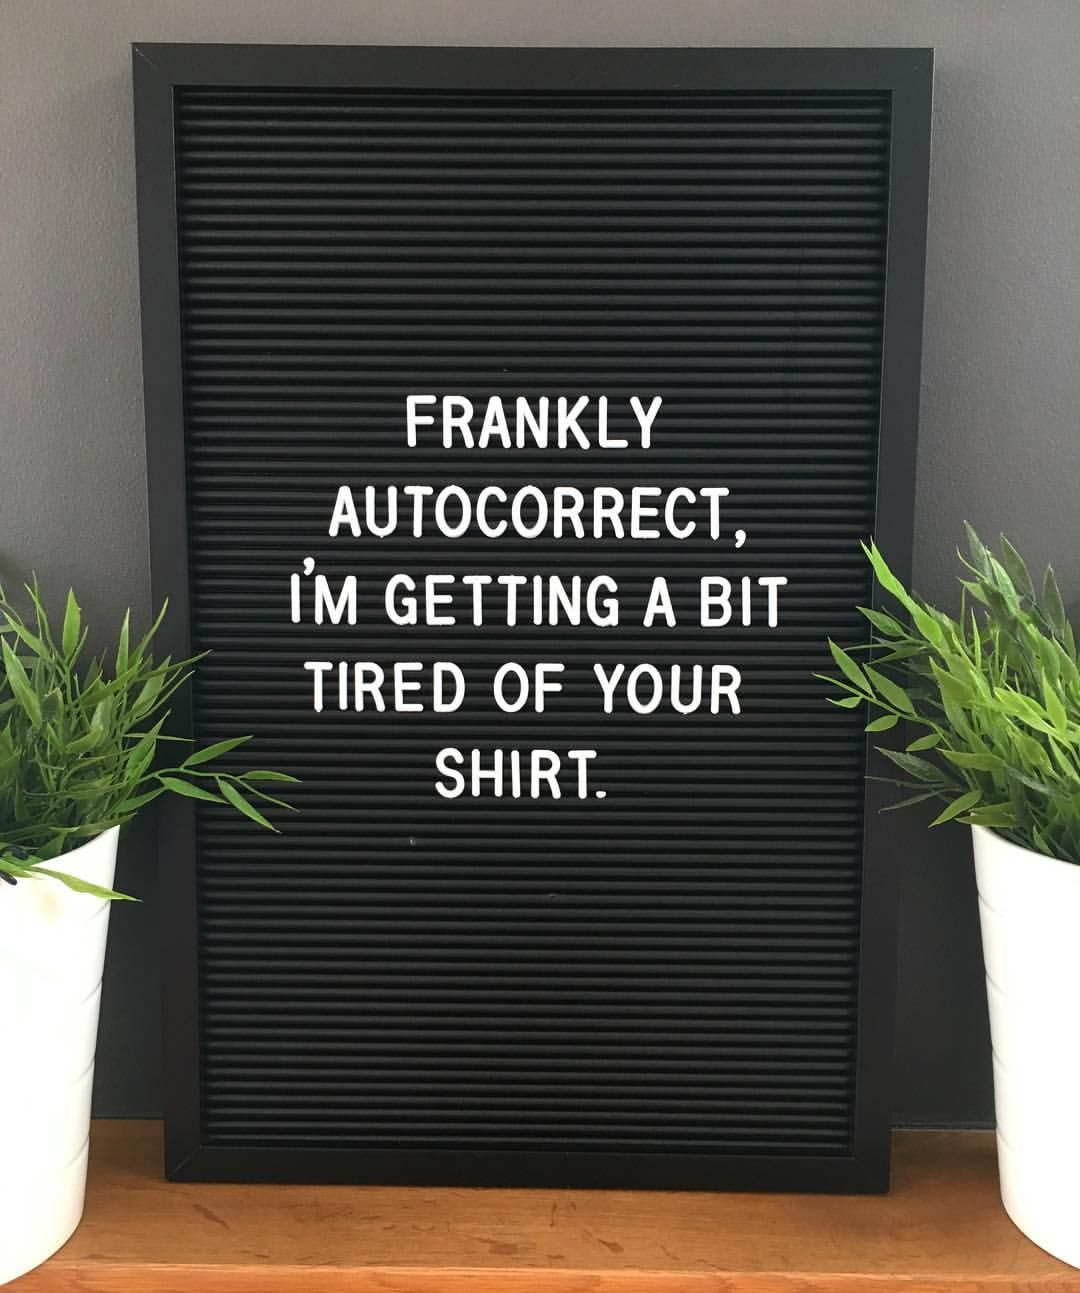 Damnyouautocorrect Autocorrect Frankly Imtired Shirt Quote Quotes Letterbox Letterboxquotes Letterboar Message Board Quotes Funny Words Funny Letters